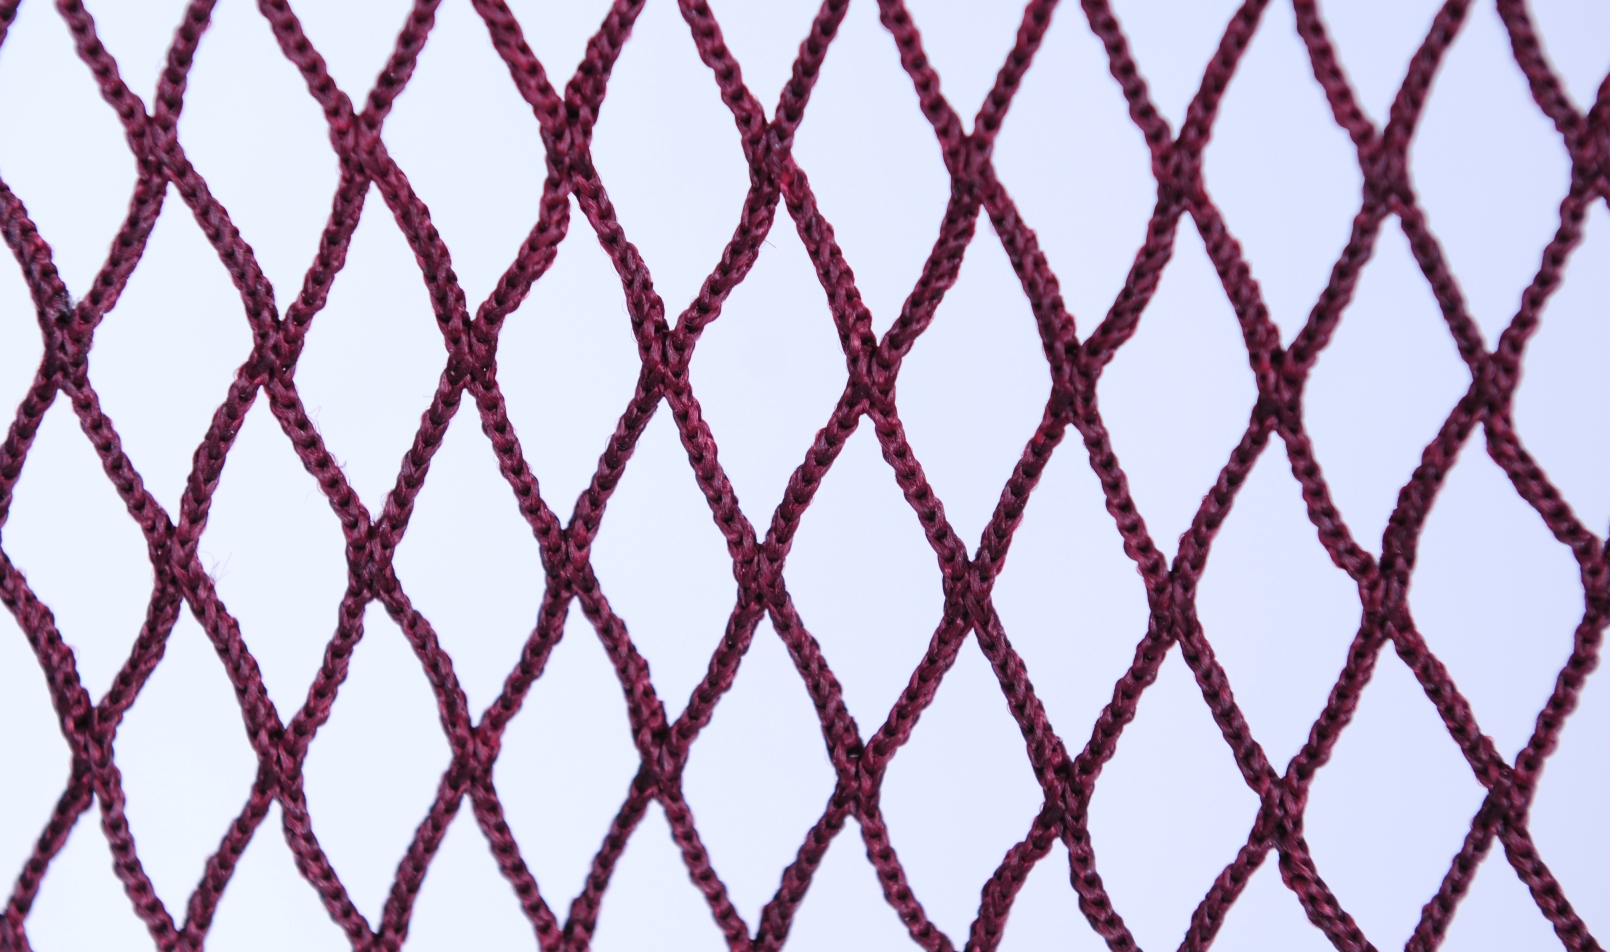 Nylon Multifilament Net Include Knotted Net and Knotless Net